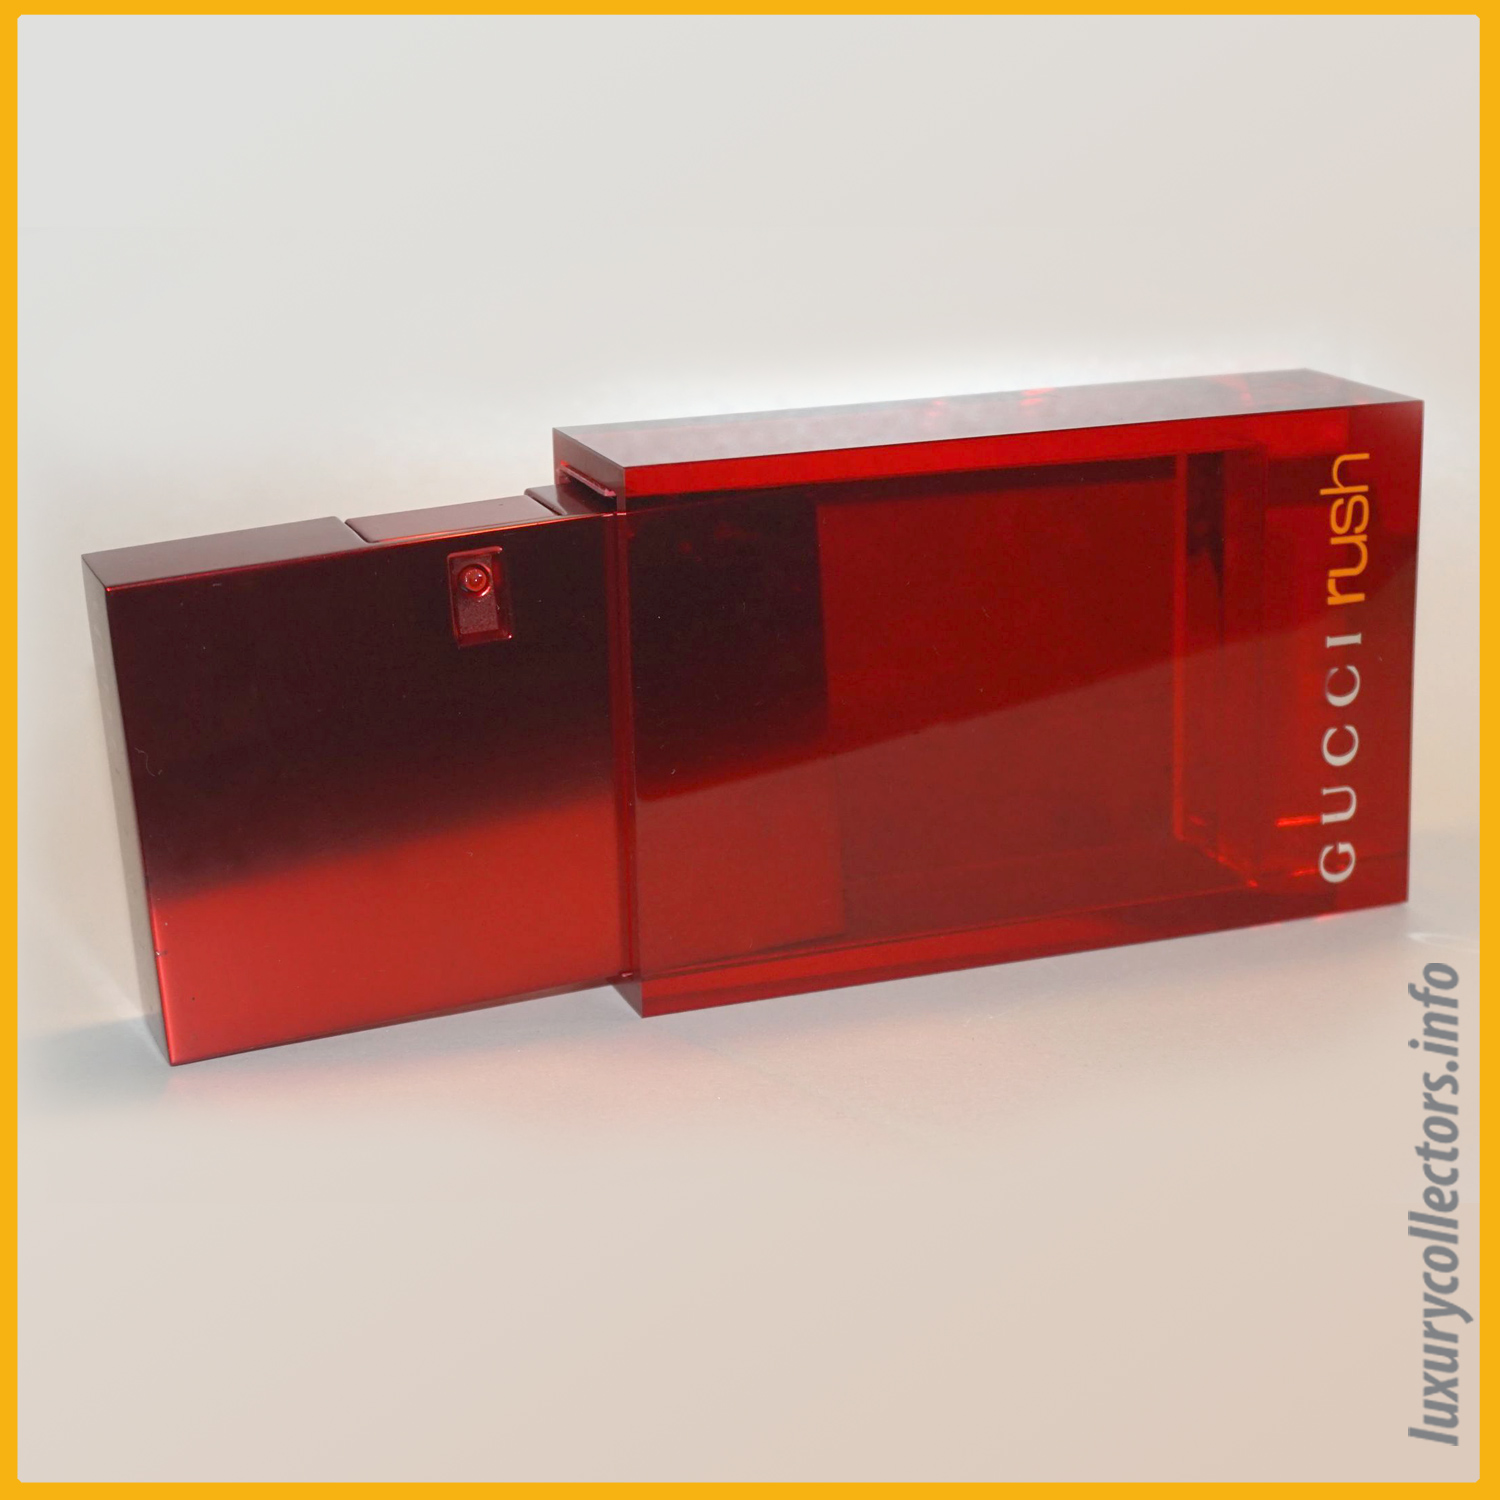 Gucci Tom Ford Italy Rush Perfume Bottle Limited Edition Millennium Parfum 1999 2000 Metal Container Acrylic Sleeve Slide Out